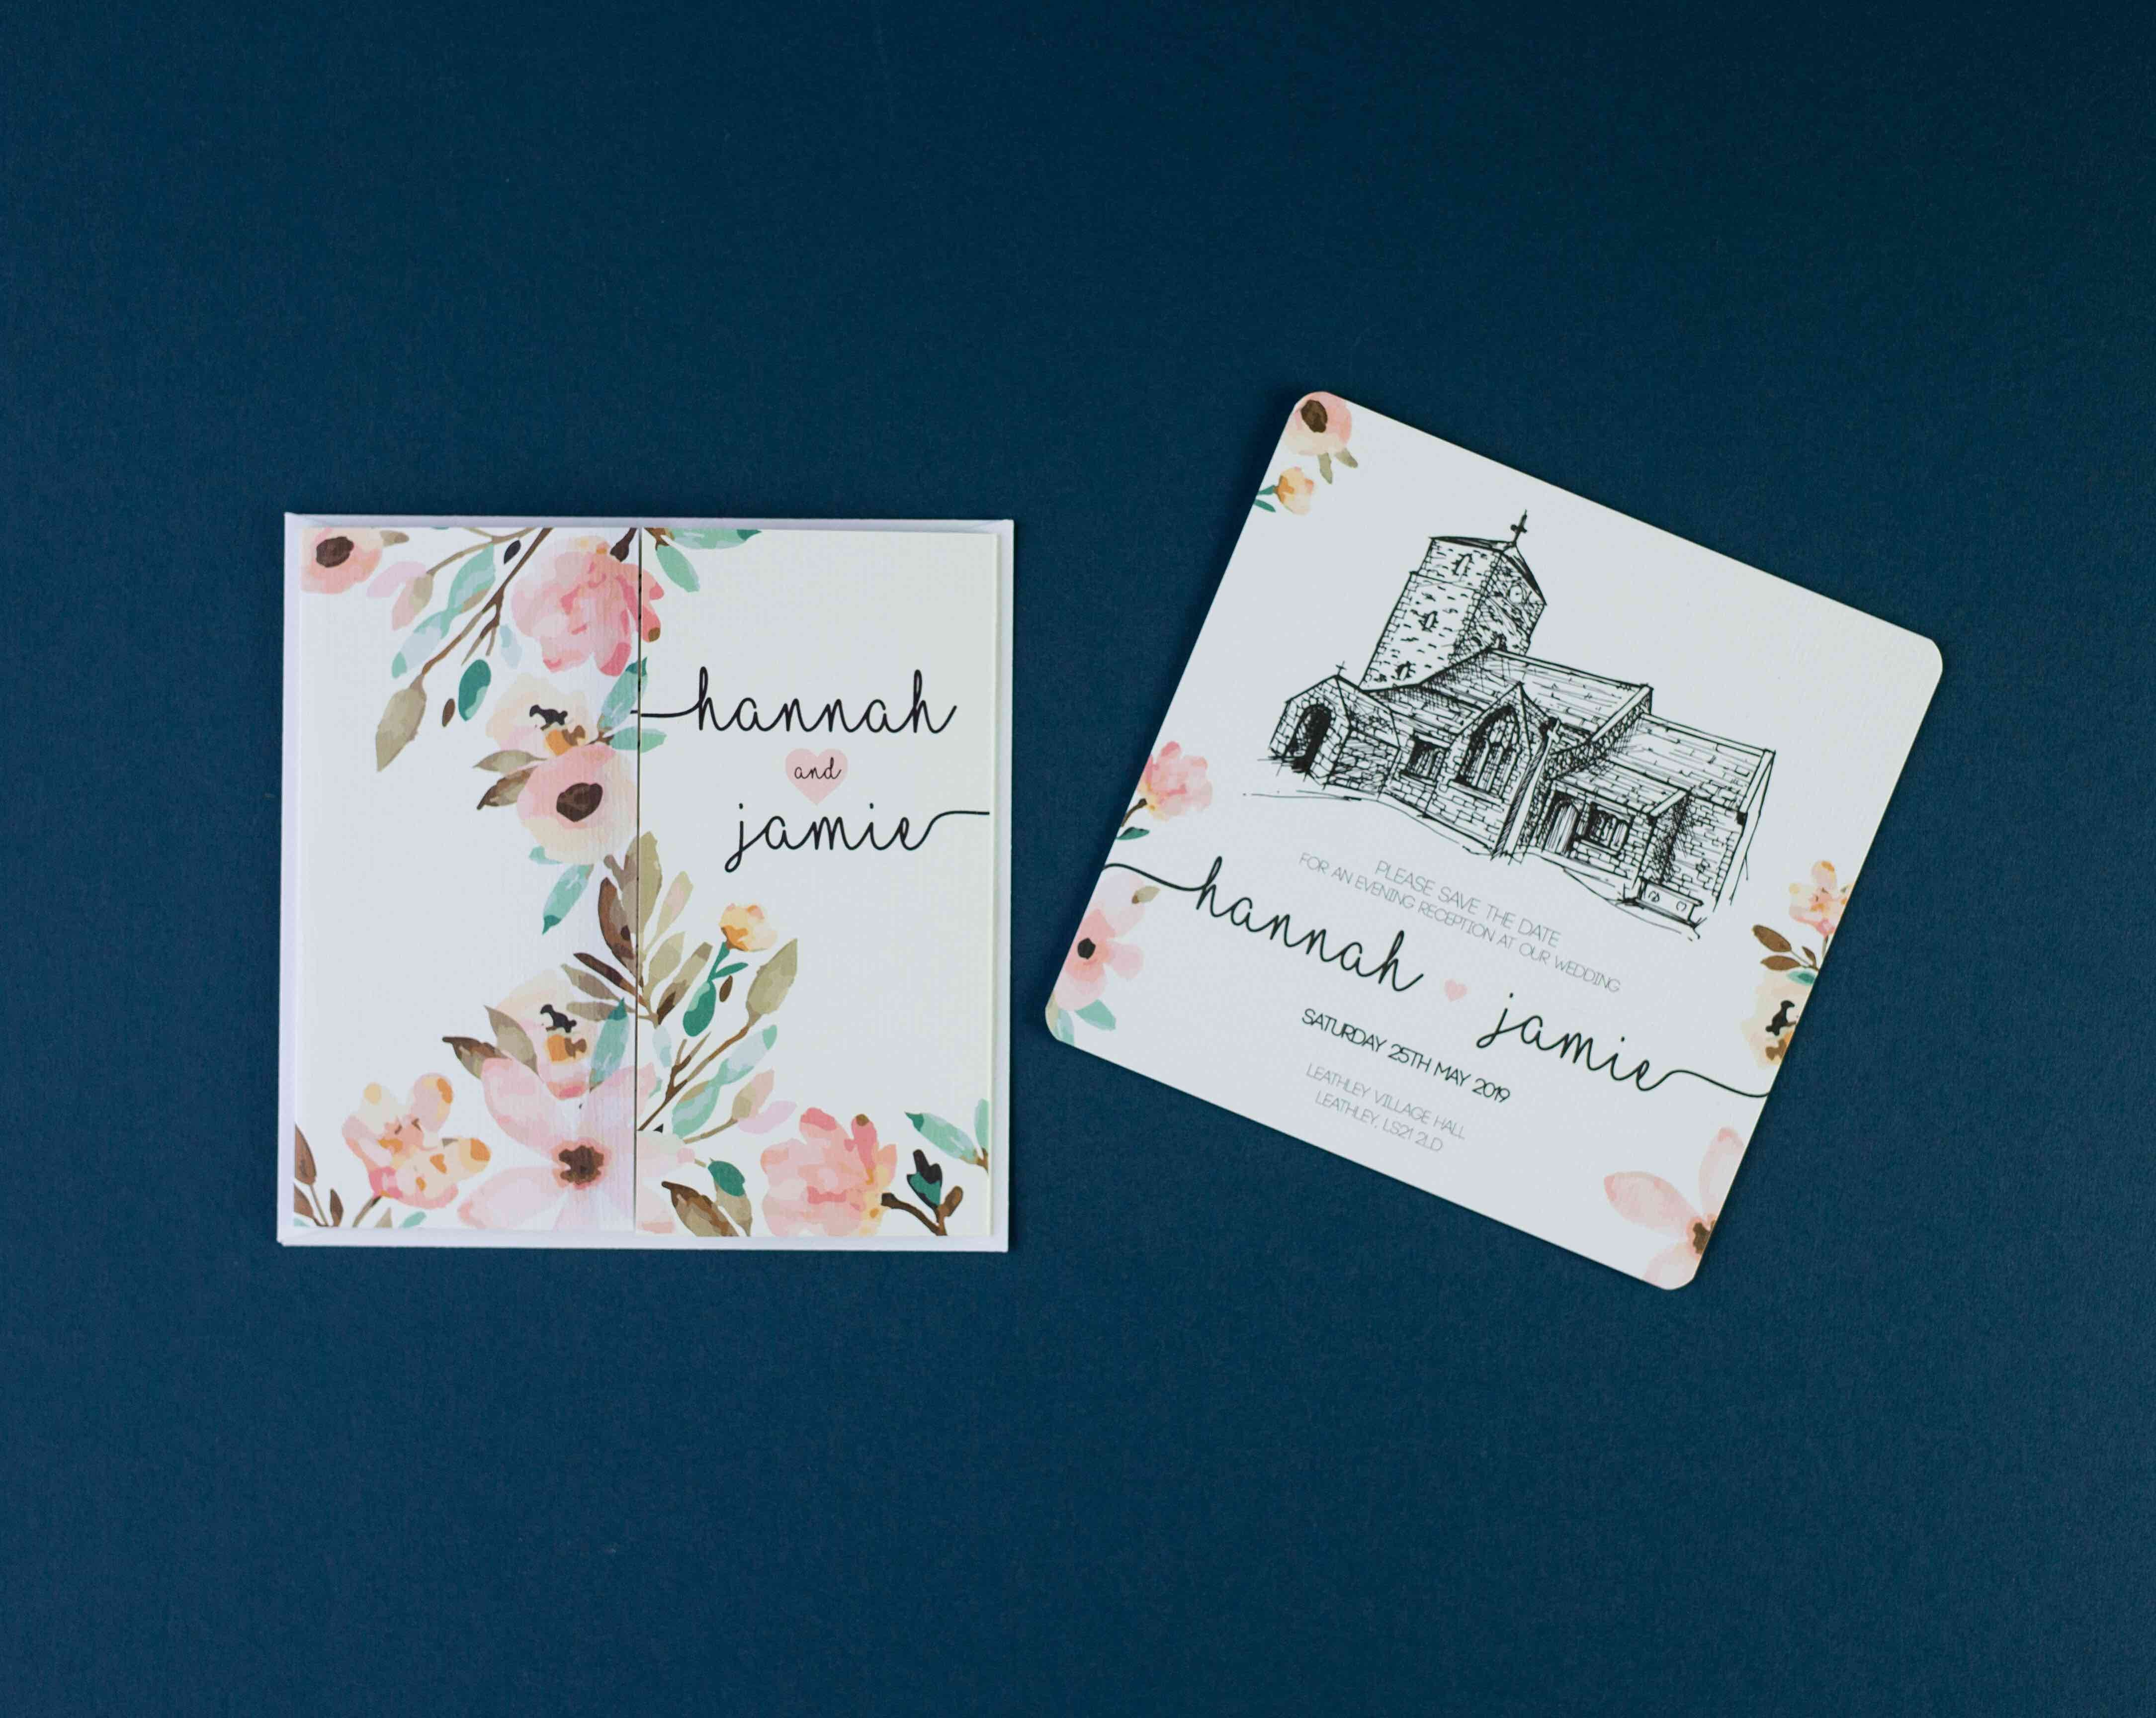 Square wedding invitation and matching save the date laid side by side flat on a dark background.